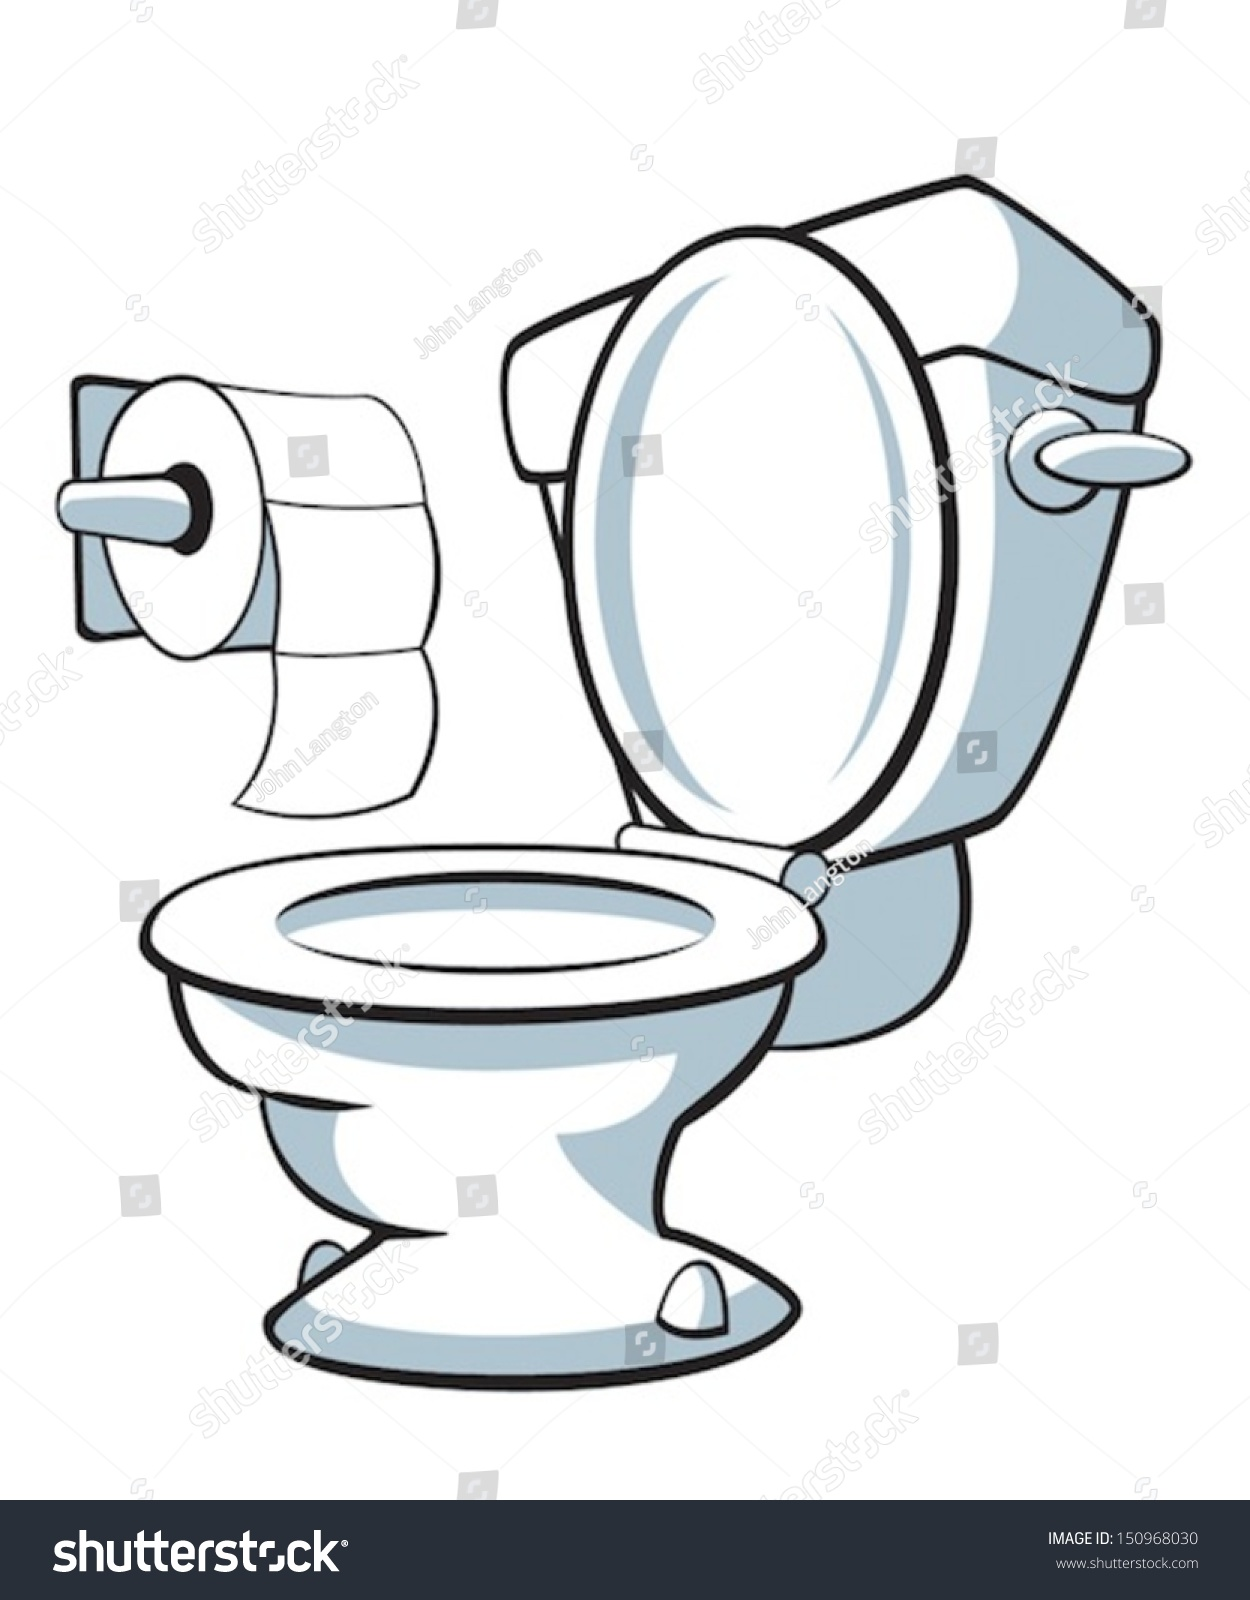 Image Result For How To Clean Toilet Bowl